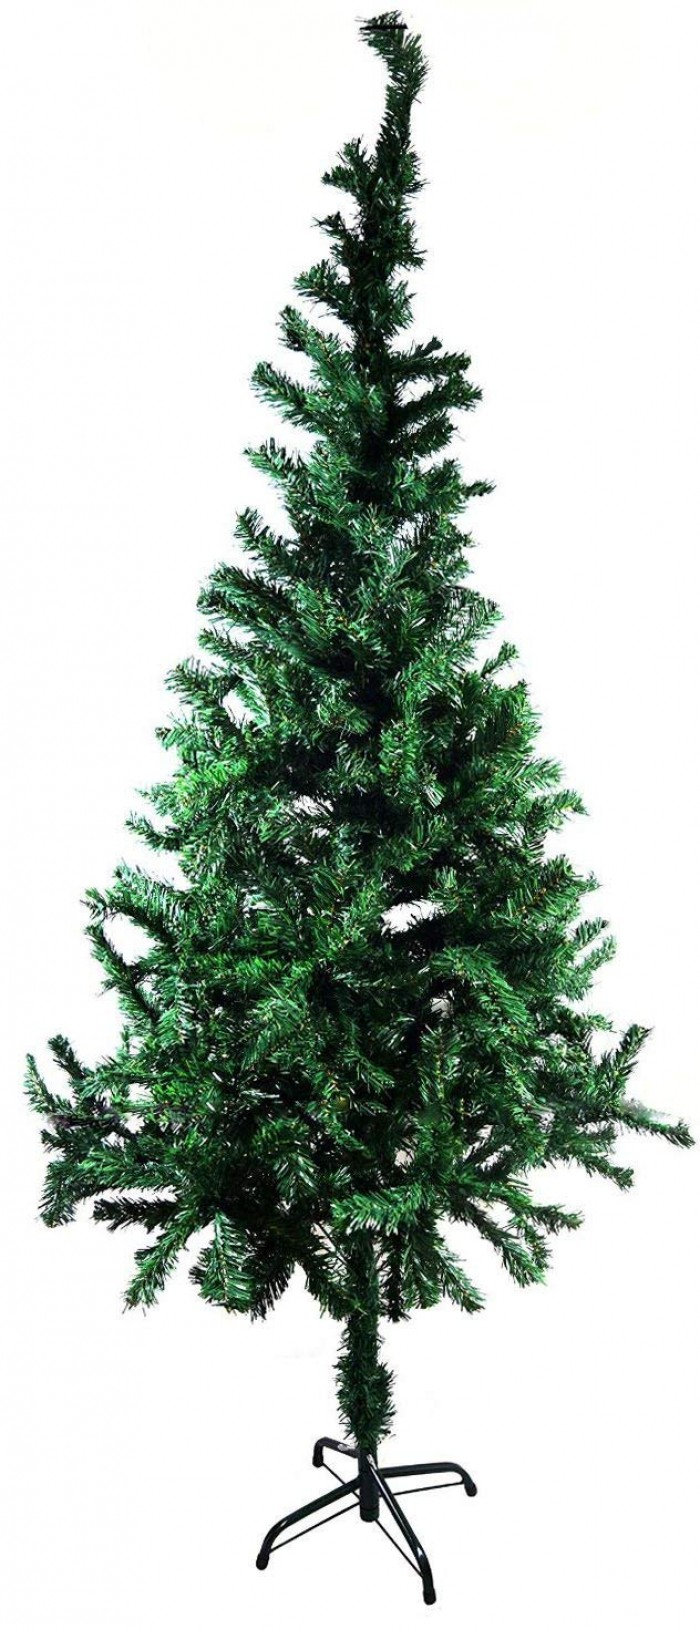 Buy Artificial Christmas Tree 6 FEET Tree 180 Cm, Natural Color (Green,) With Plastic Leaves, And St